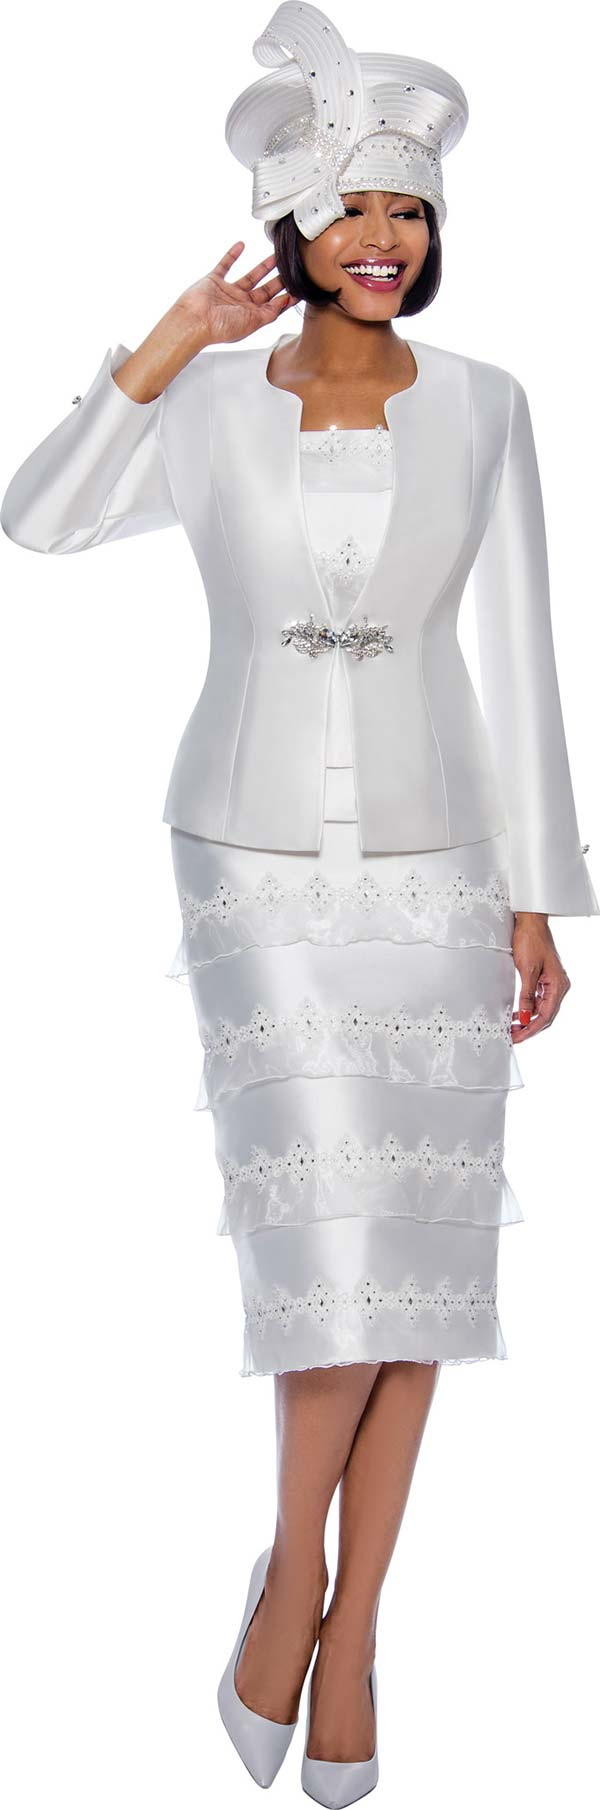 Susanna 3981-White - Skirt Suit With Rhinestone Embellished Organza Tier Design